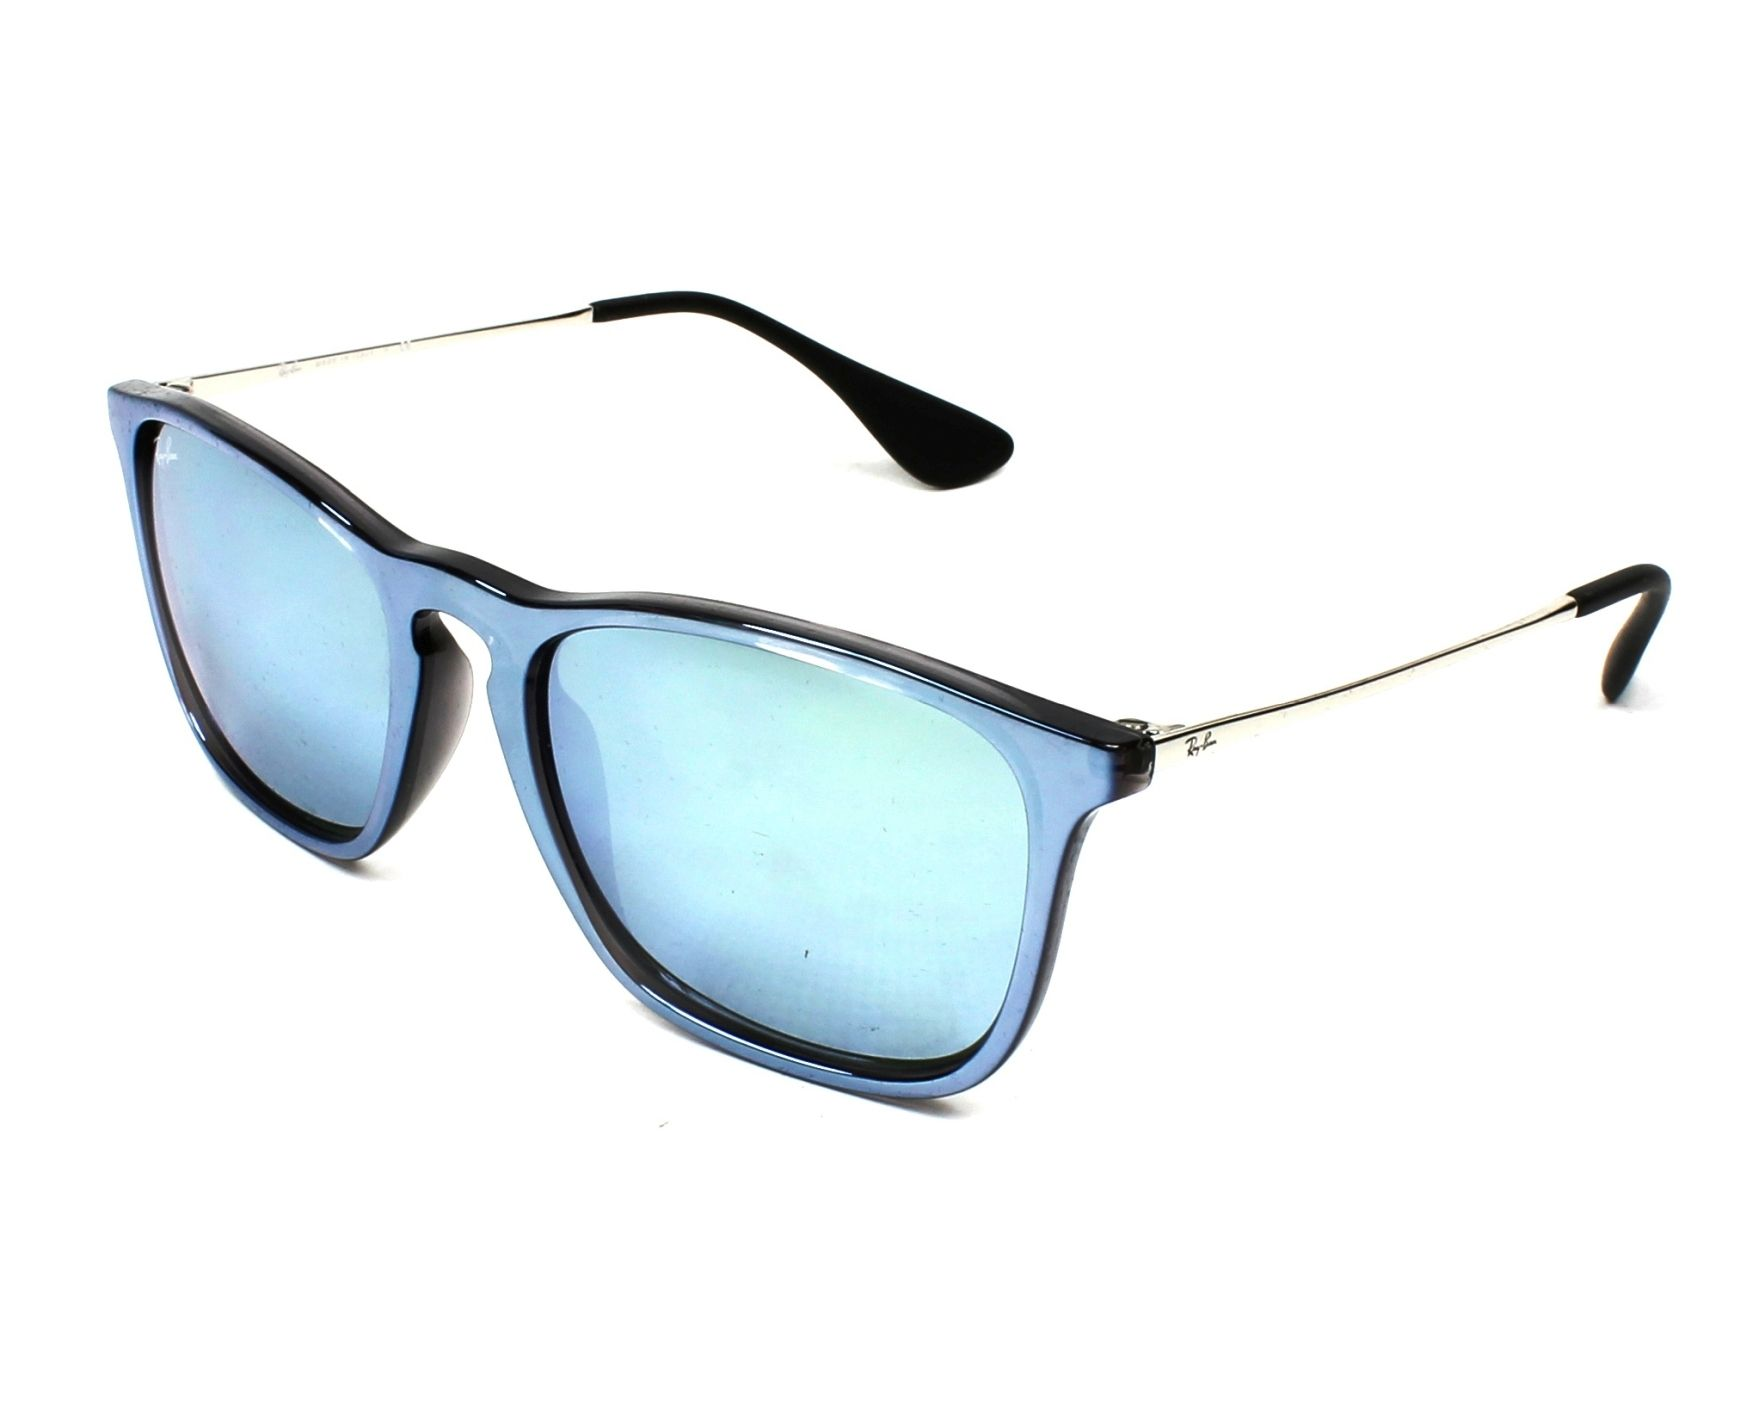 dfda1a143d9 Sunglasses Ray-Ban RB-4187 631930 54-18 Blue Silver profile view